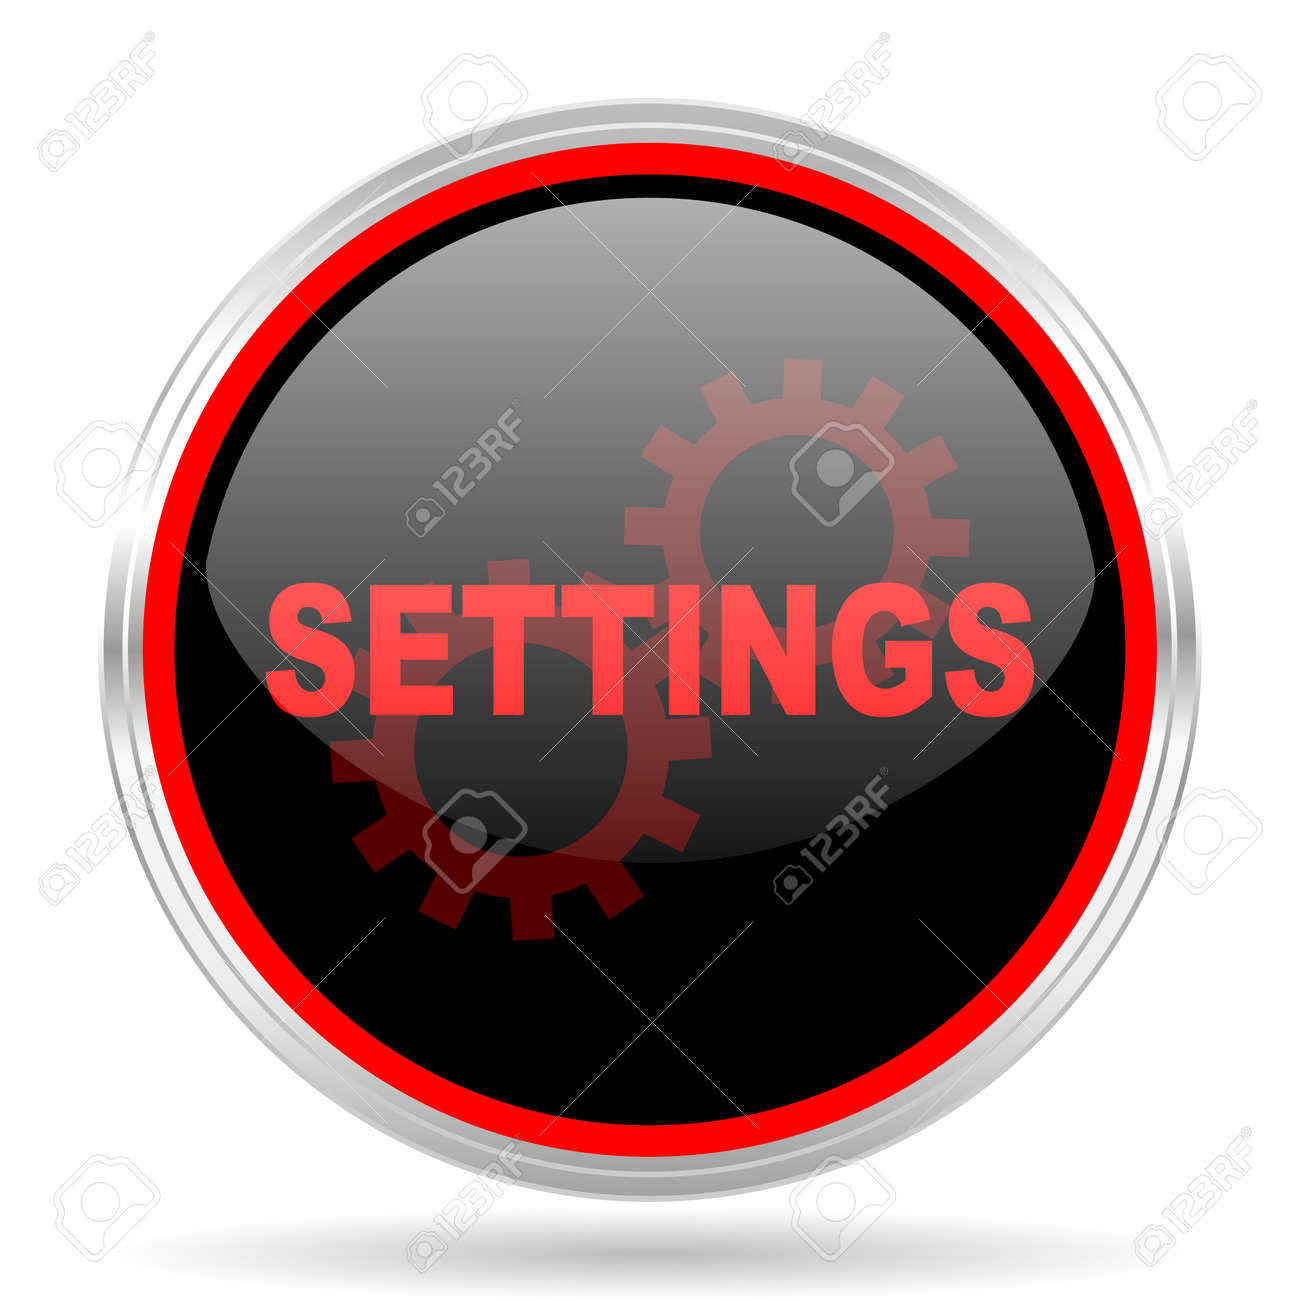 Settings Black And Red Metallic Modern Web Design Glossy Circle Stock Photo Picture And Royalty Free Image Image 54254909